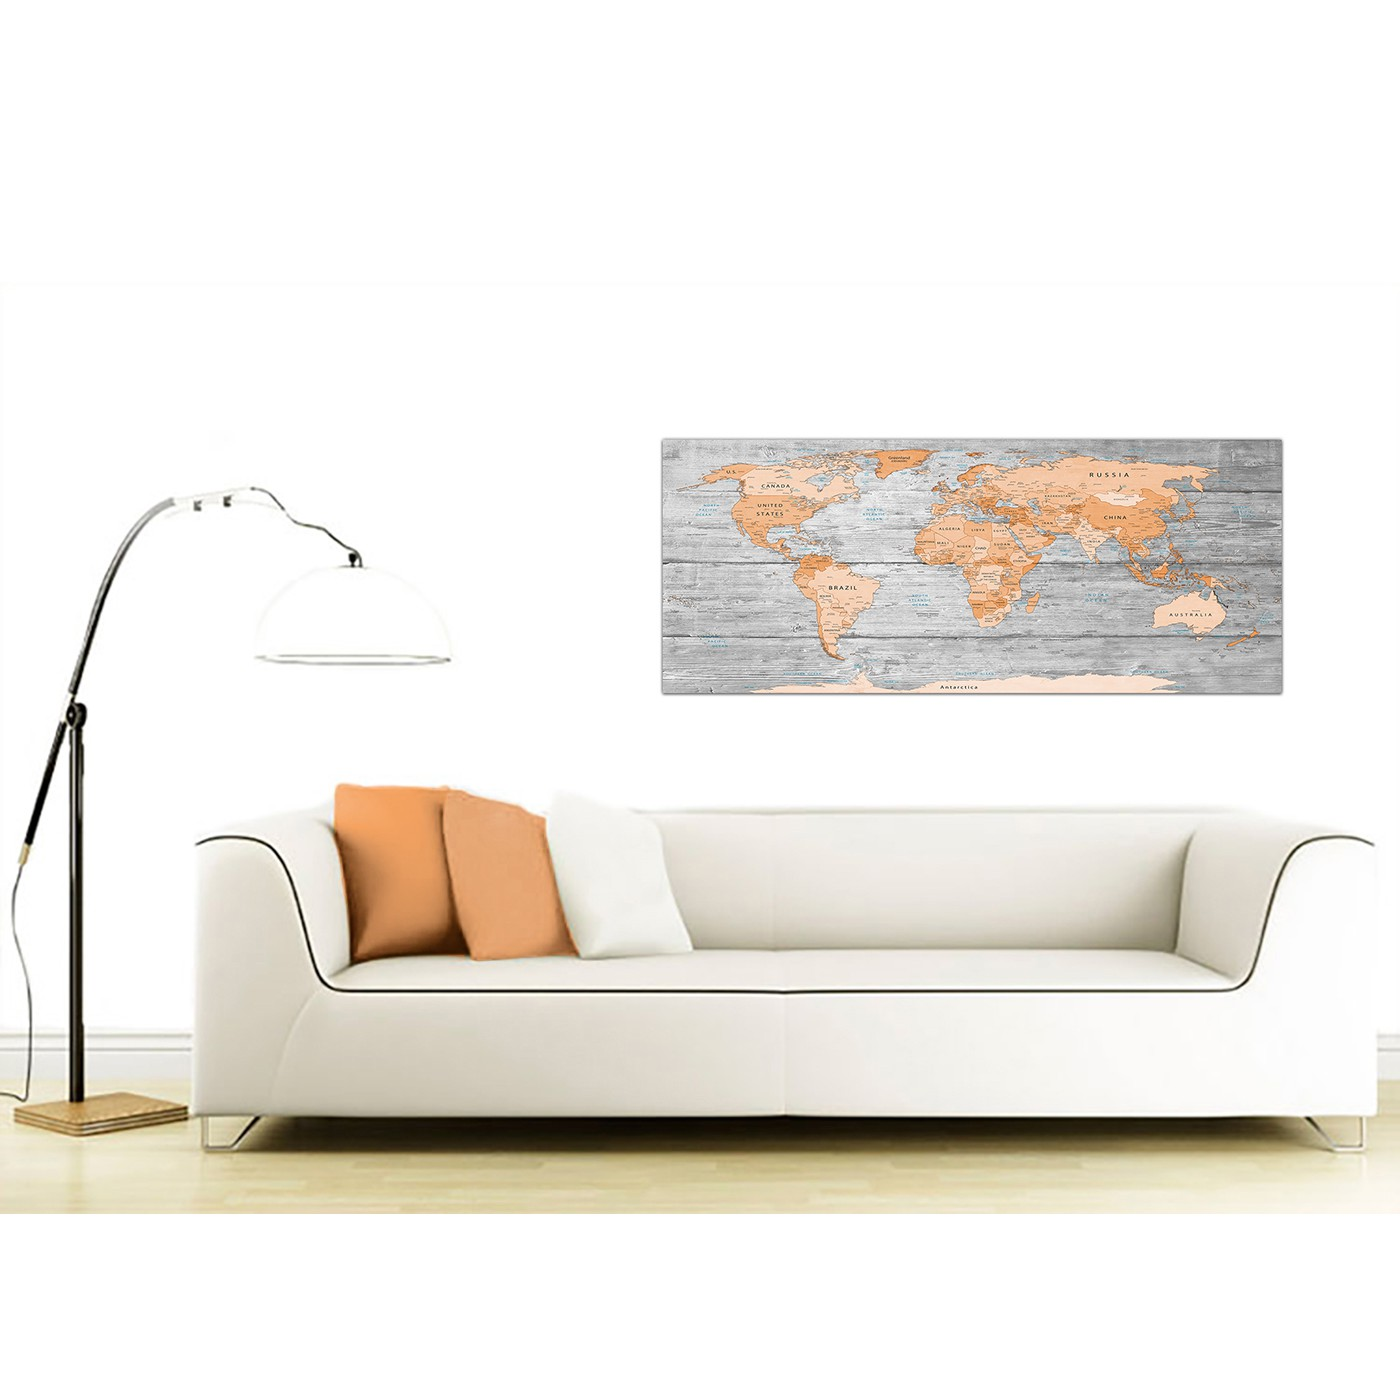 Large orange grey map of world atlas canvas wall art print modern display gallery item 3 contemporary orange cream large orange grey map of world atlas canvas wall art print maps canvas display gallery item 4 gumiabroncs Images